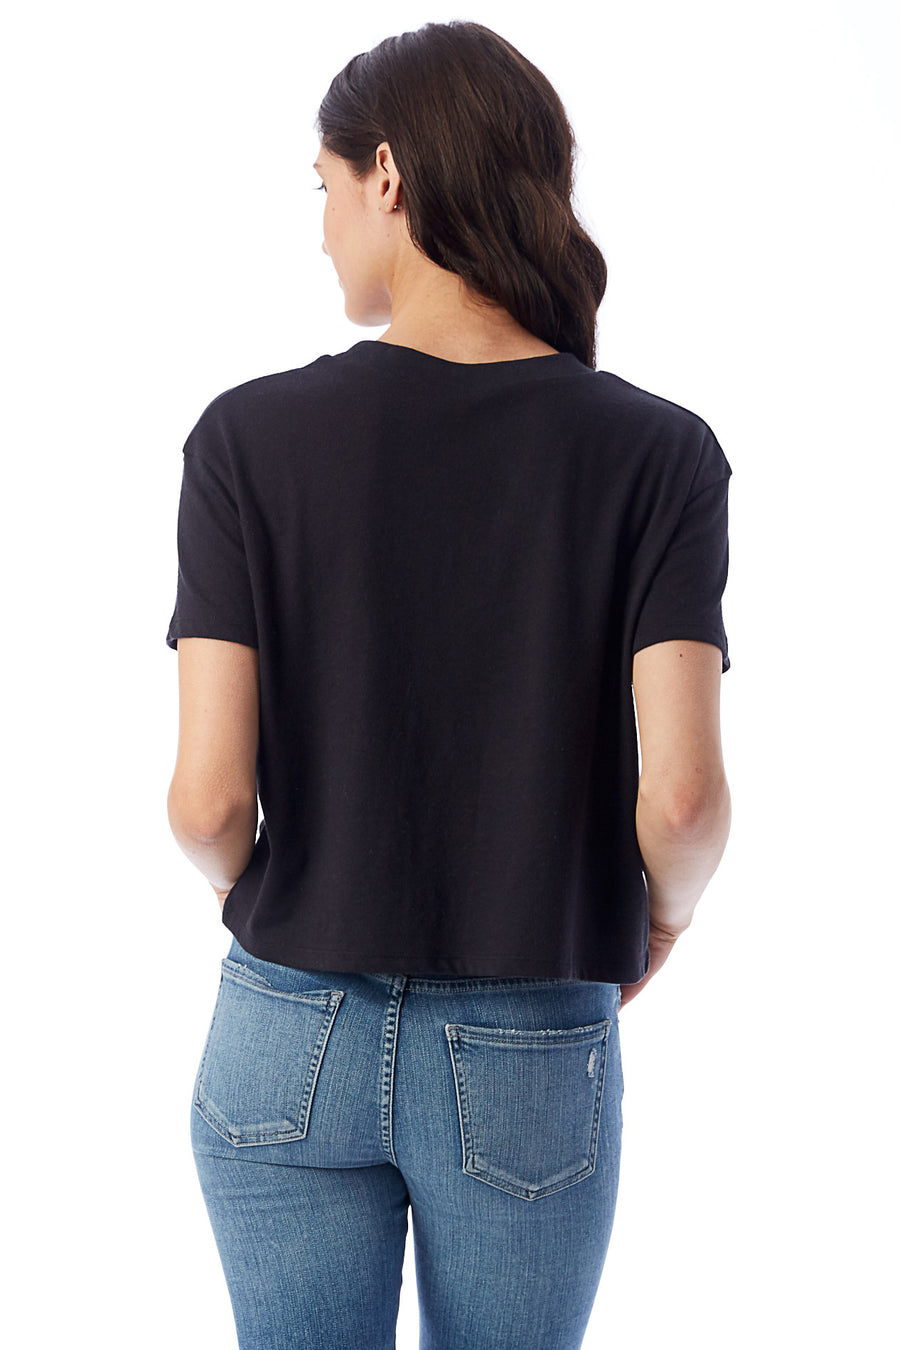 Headliner Cropped T-Shirt - Black - Pavilion